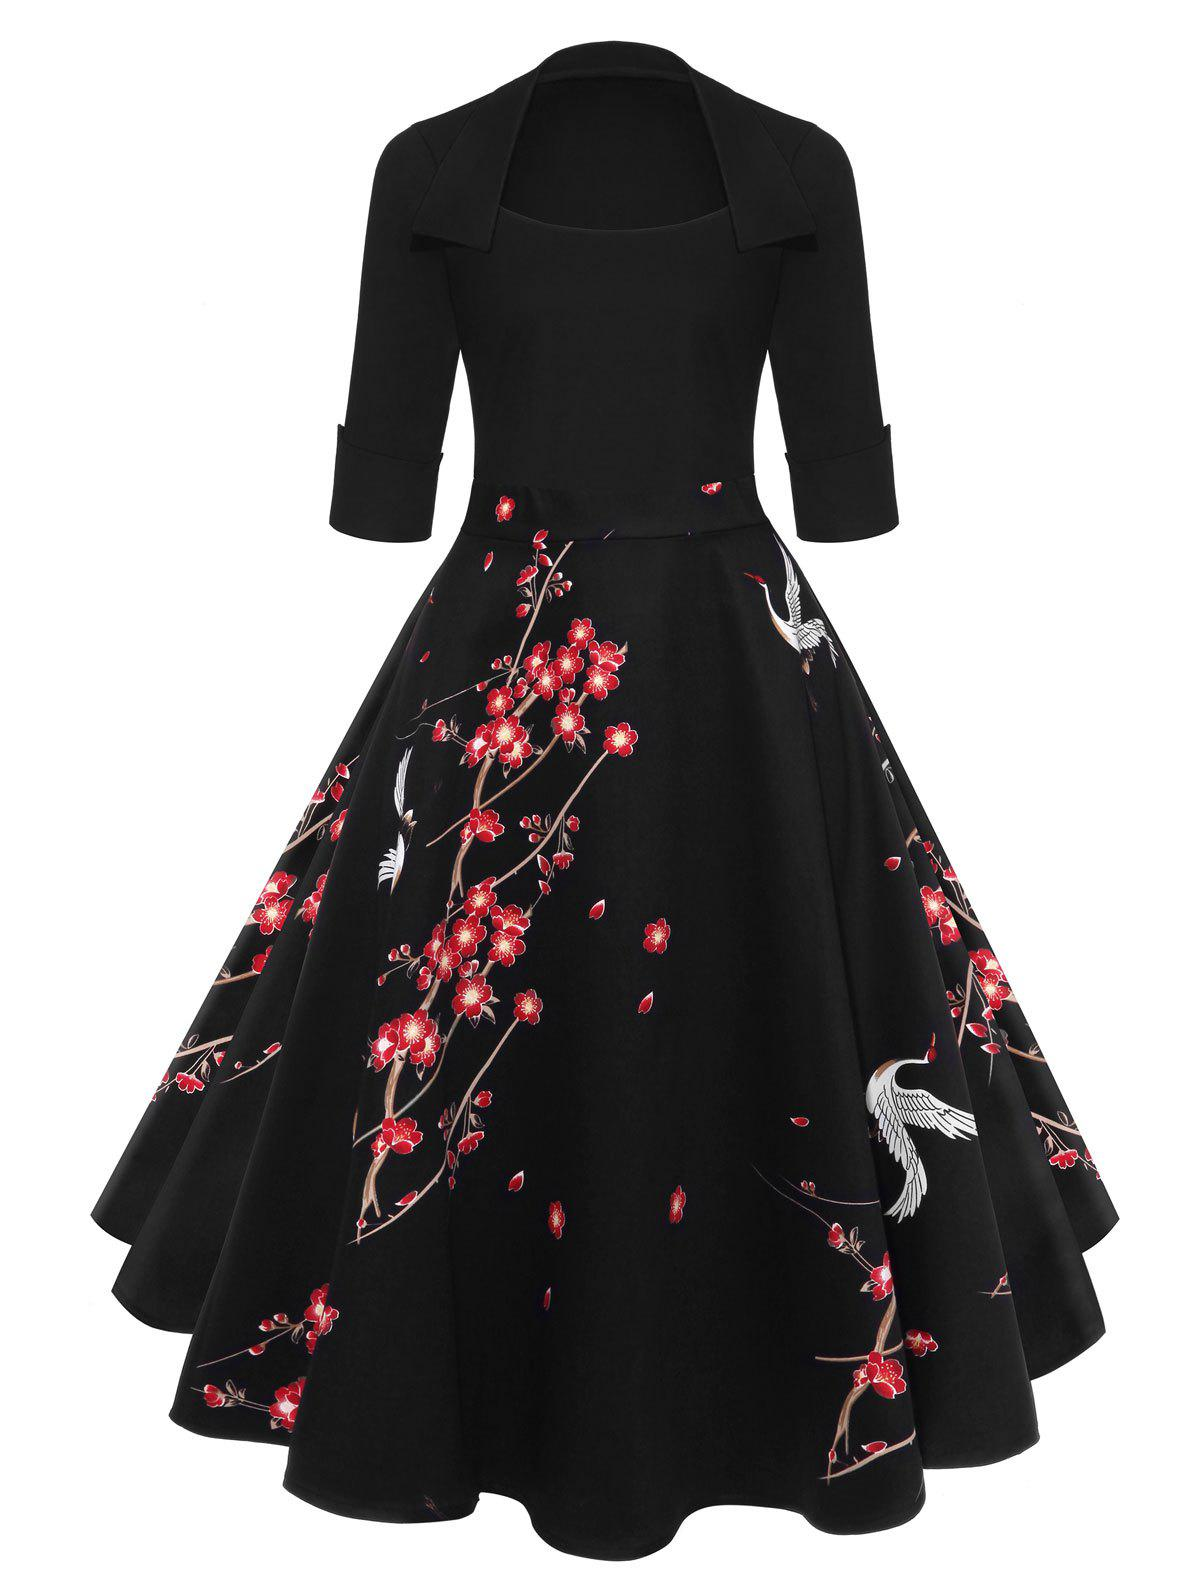 Blossom Printed Vintage Swing Dress - BLACK S